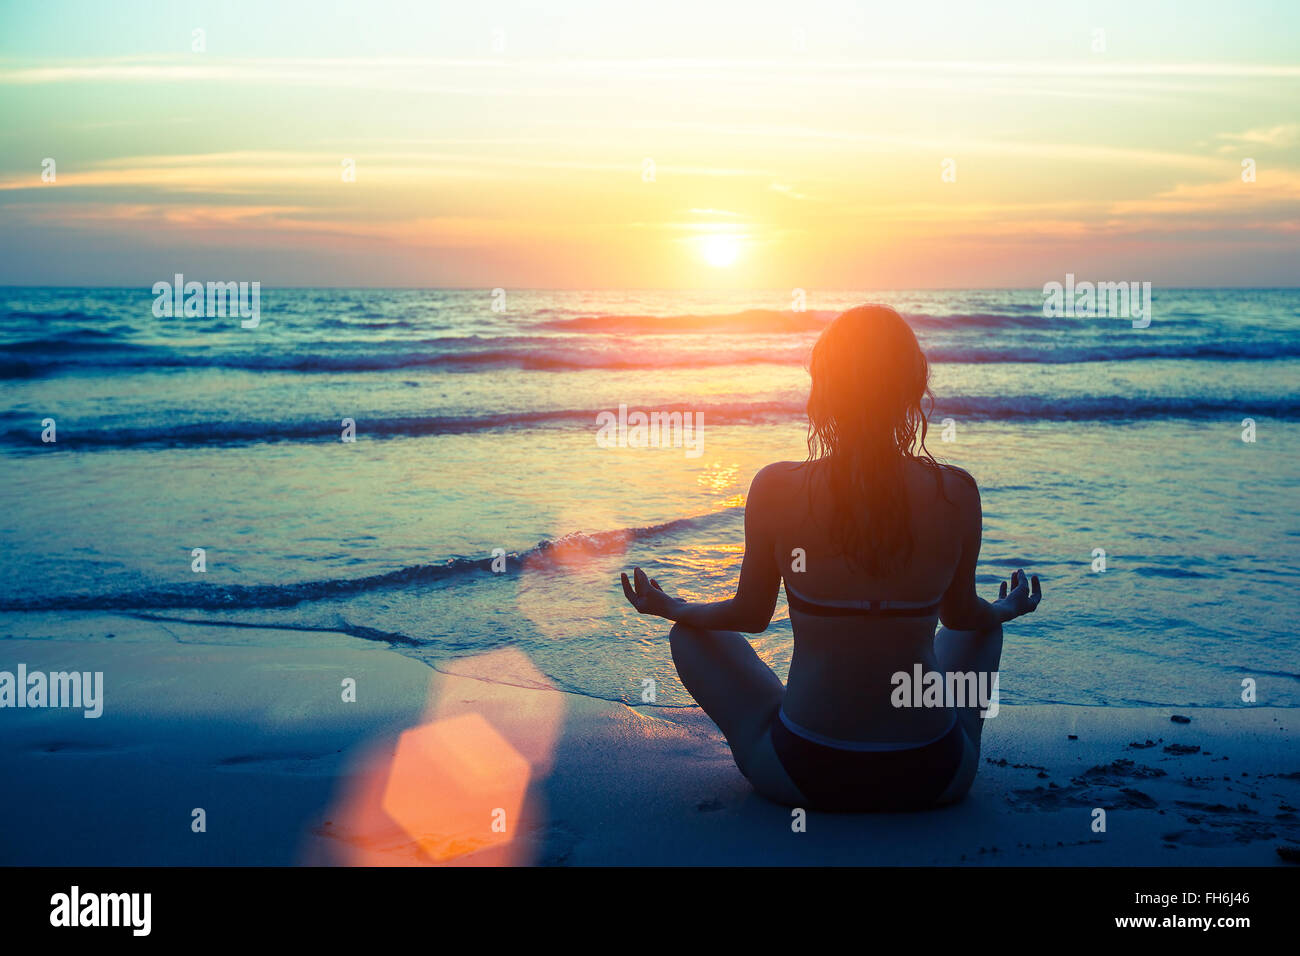 Woman silhouette yoga on the beach during sunset. - Stock Image